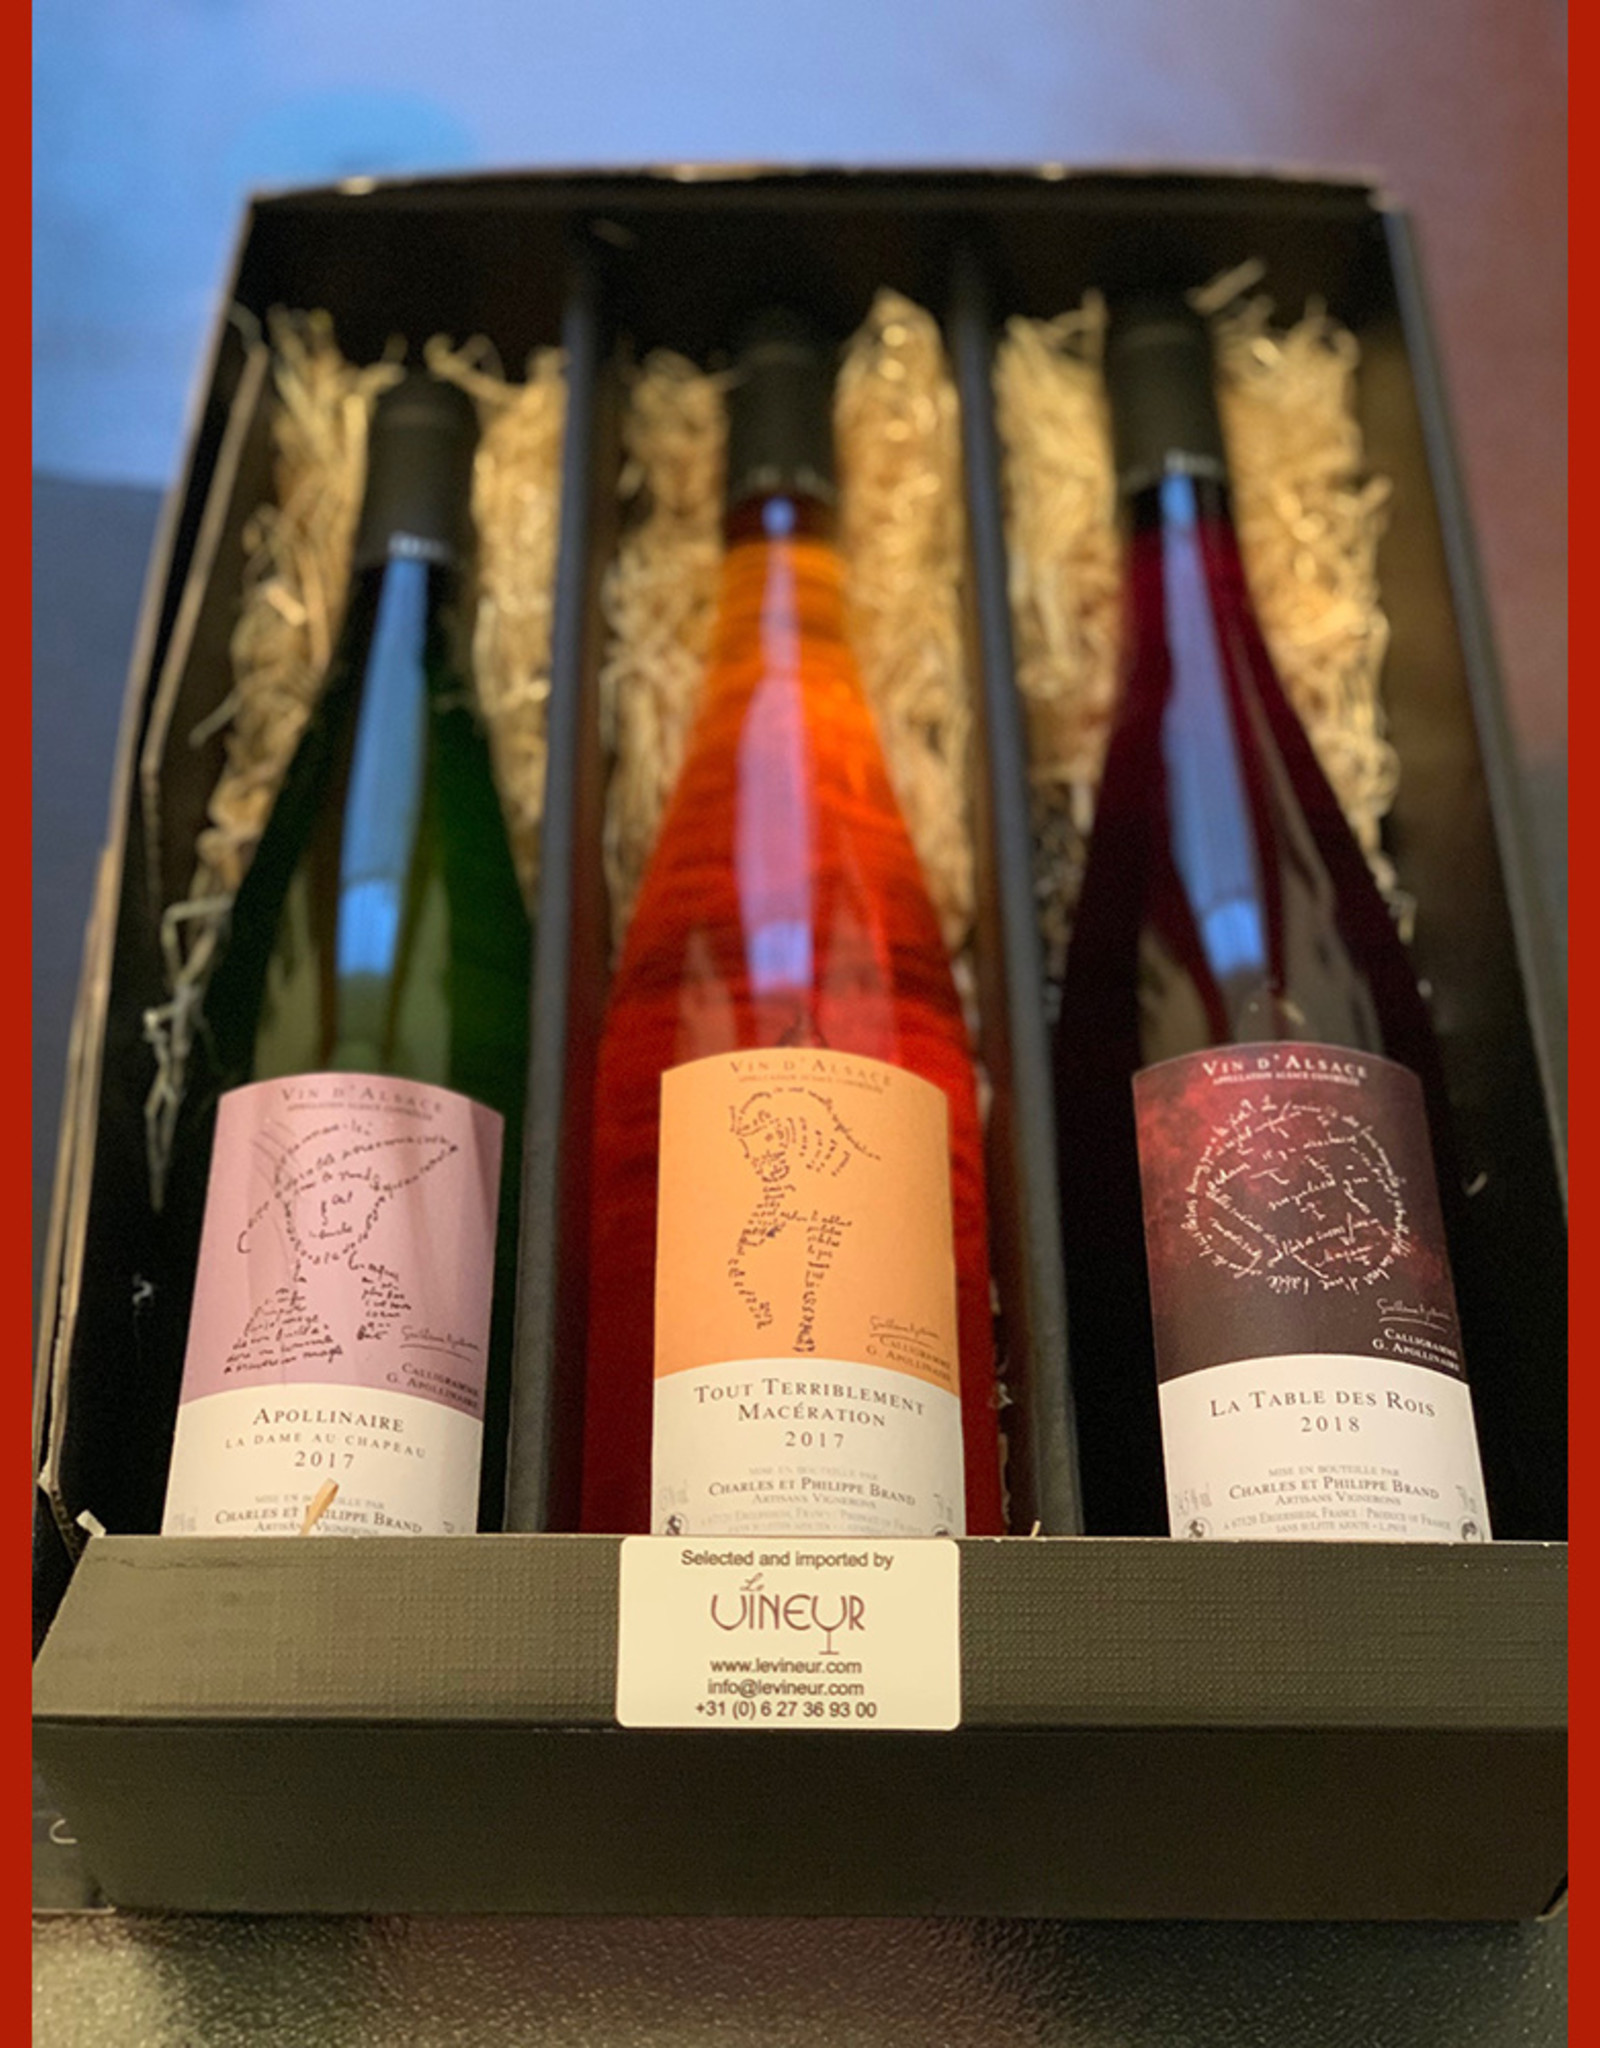 Gift set Philippe Brand natural wines